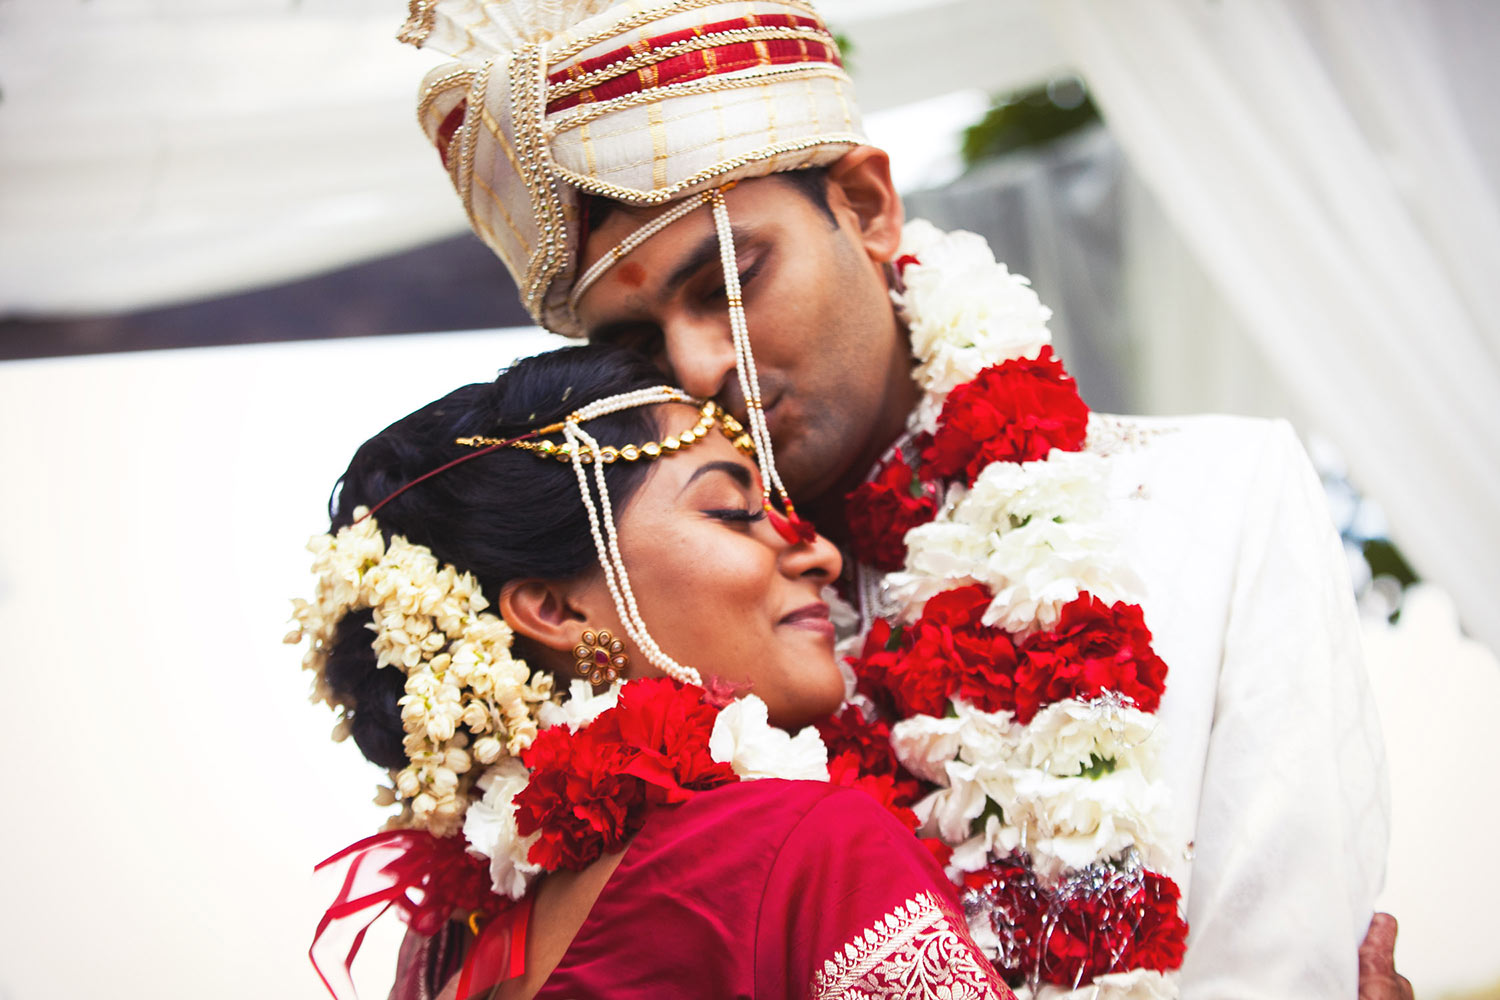 Best Los Angeles Indian Wedding photo of Bride and groom just married